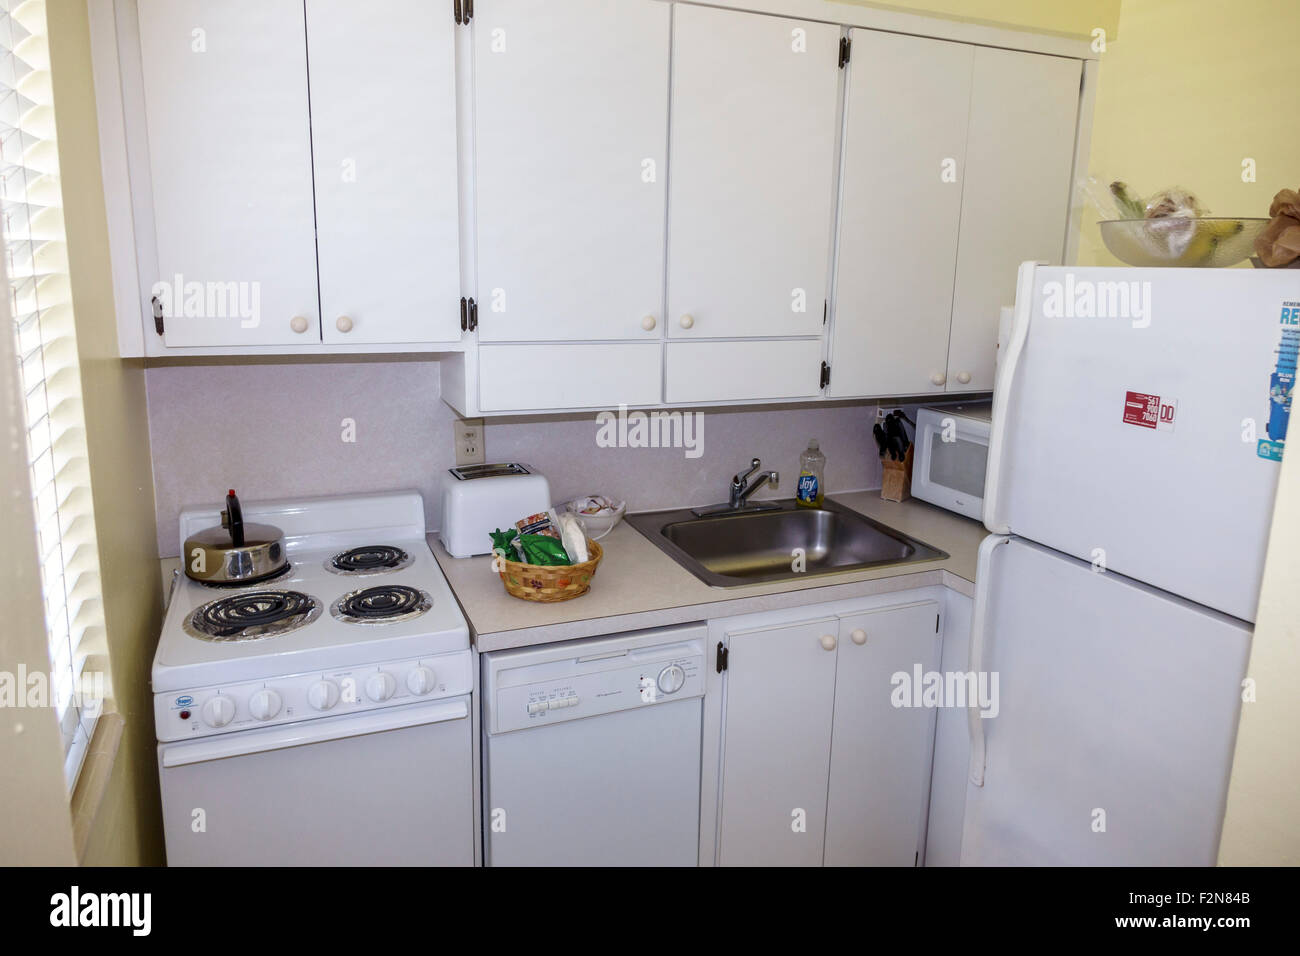 Florida FL South Delray Beach Wright by the Sea hotel Old palm trees guest room kitchen kitchenette stove sink refrigerator - Stock Image